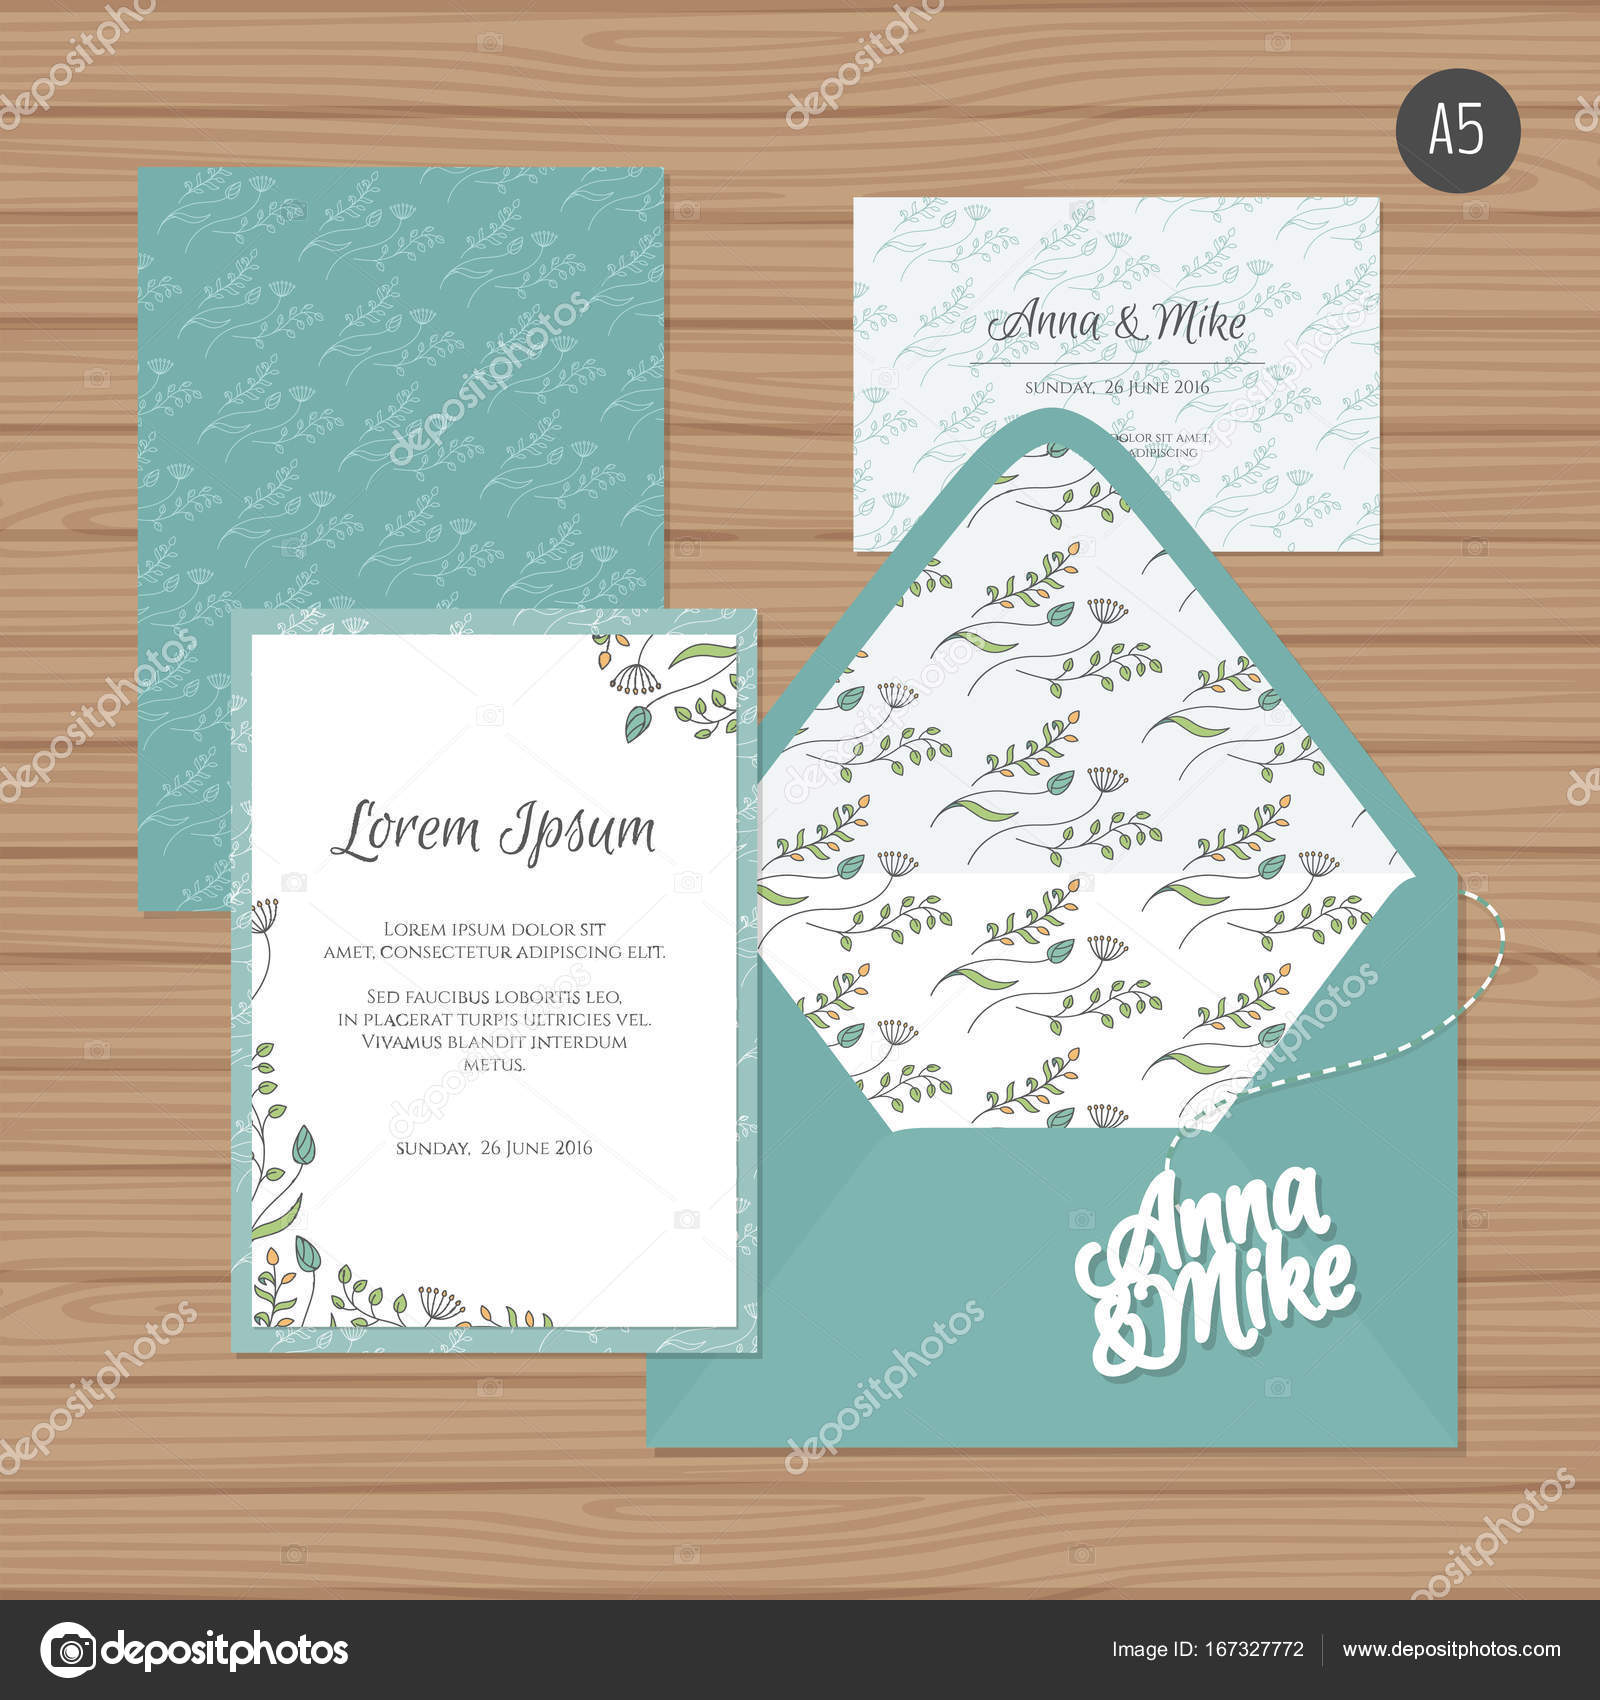 Template wedding invitation and envelope with floral ornament ...